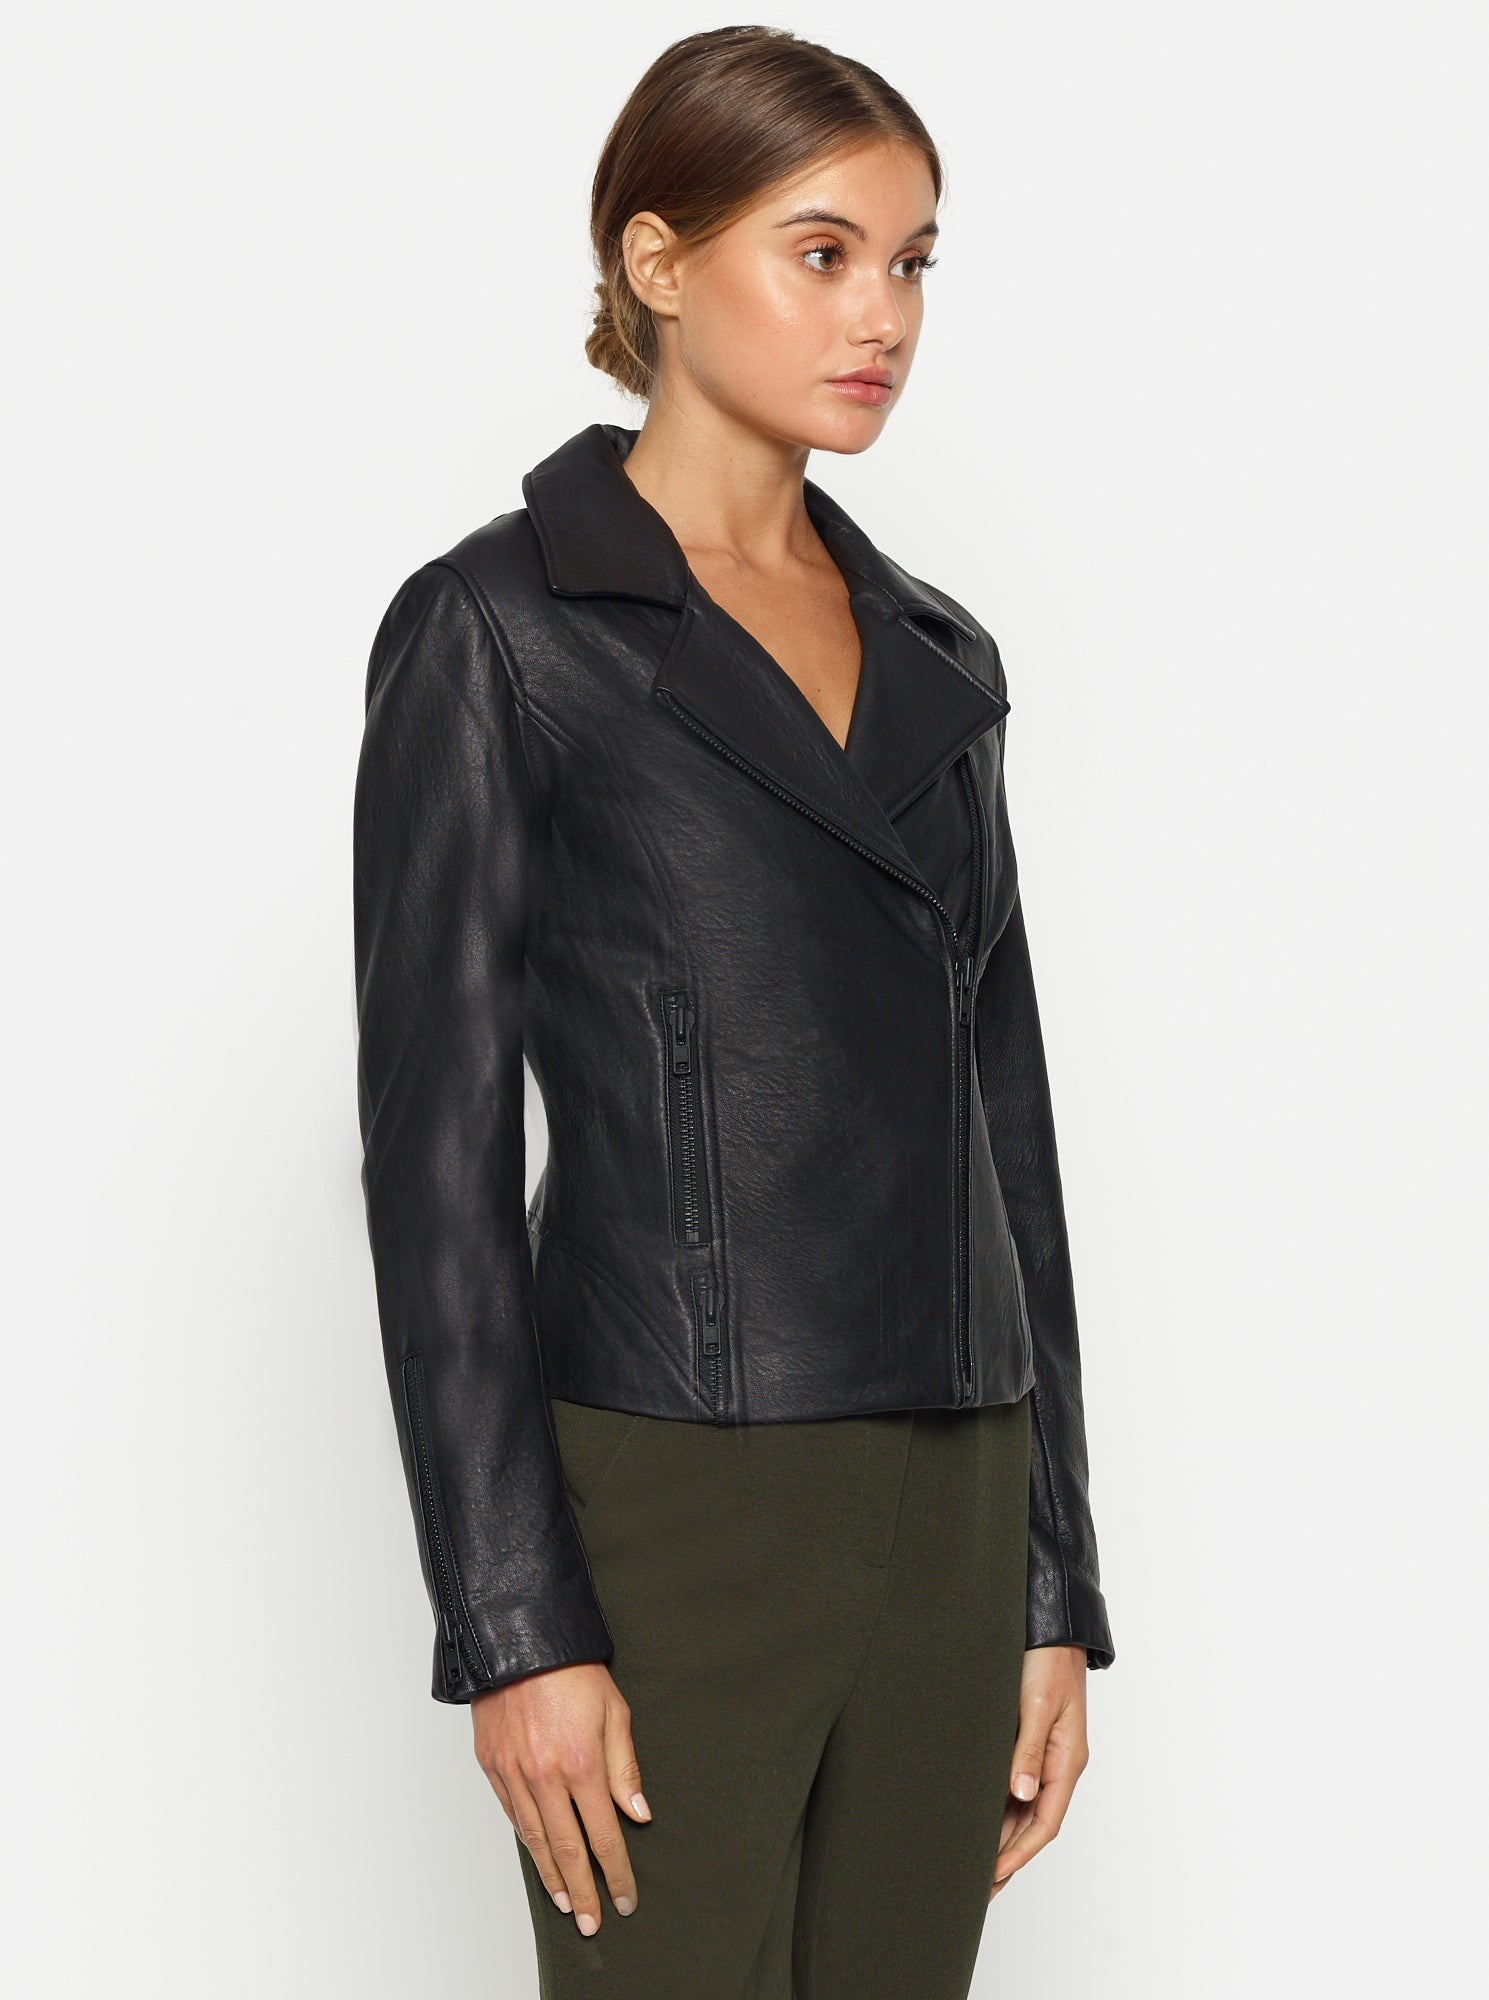 Born To Be Wild Crop Leather Jacket - Black